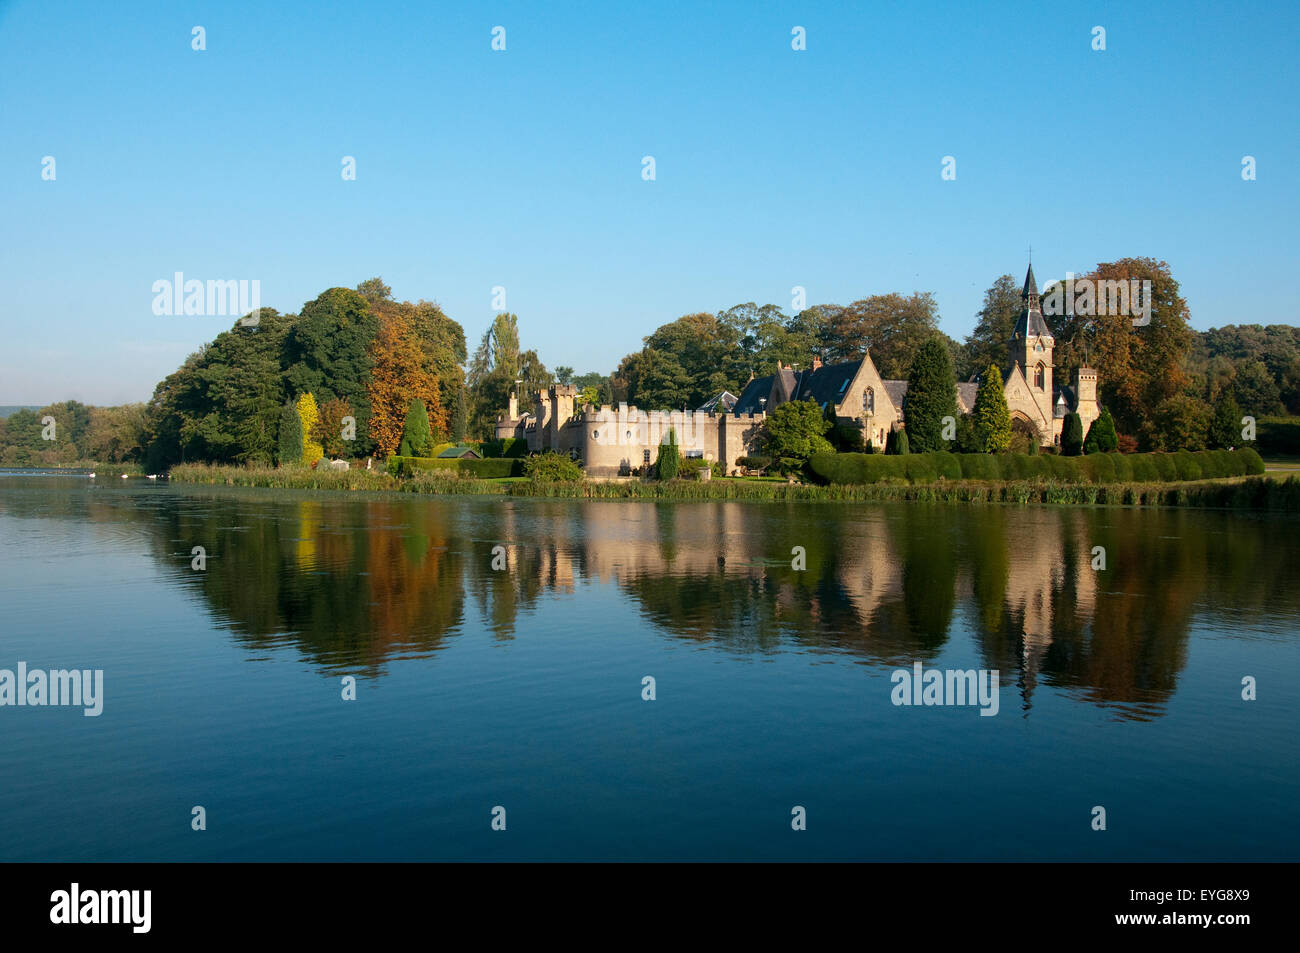 The Fort at Newstead Abbey, Nottinghamshire England UK - Stock Image